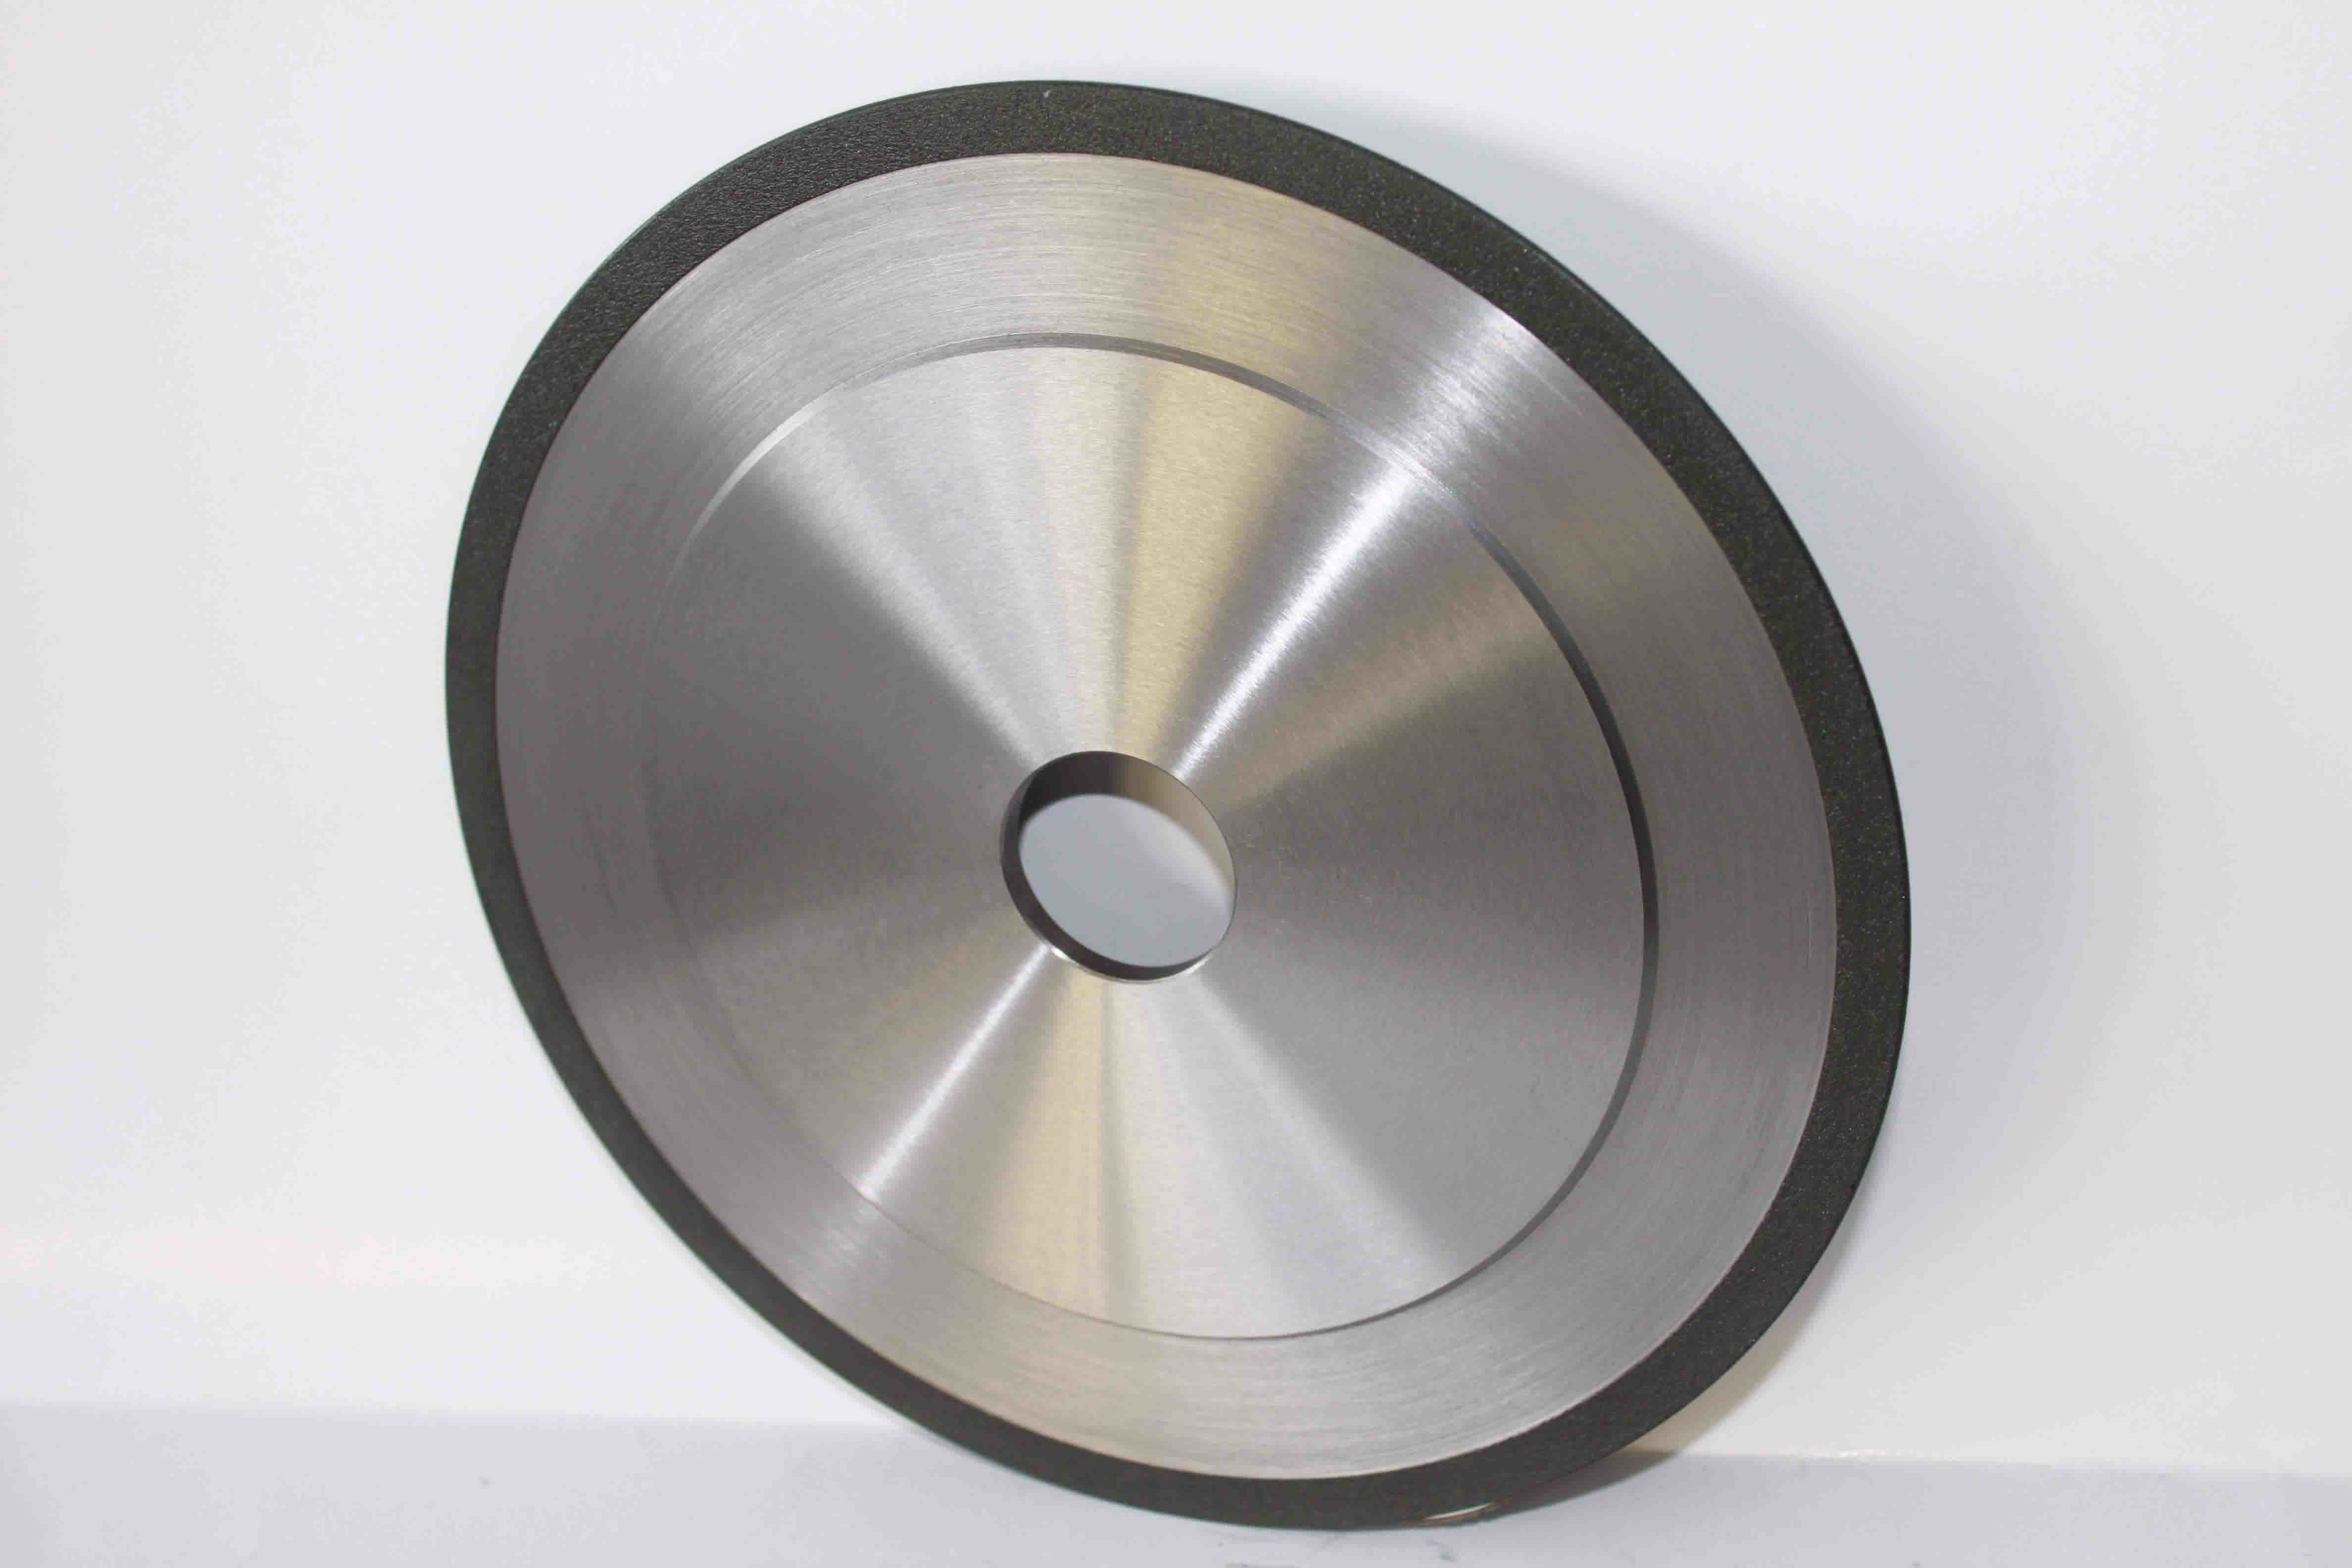 Diamond and CBN Profile Wheels, Woodworking Tooling